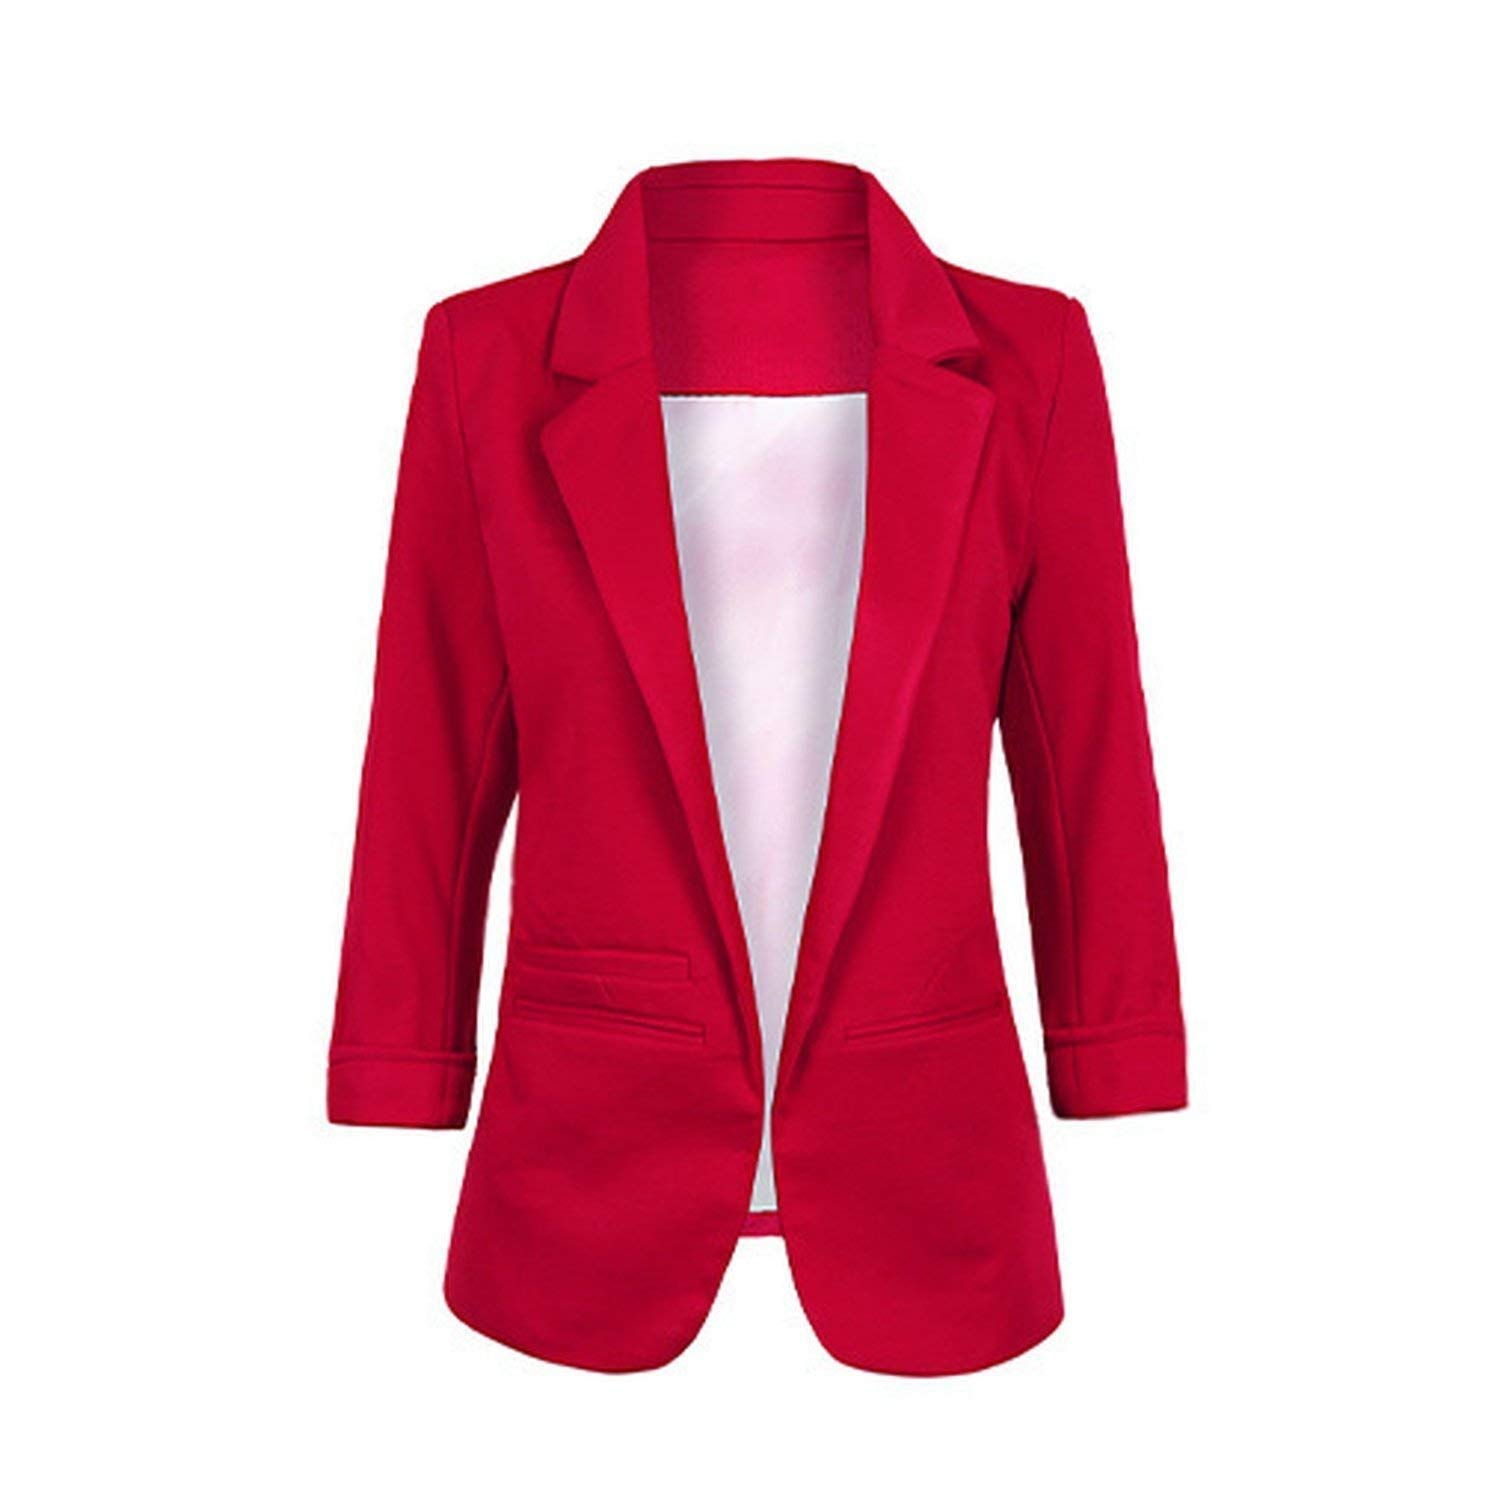 Winered Friendshiy Womens Casual Work Office Open Front Blazer Jacket Sleeve Suit Slim